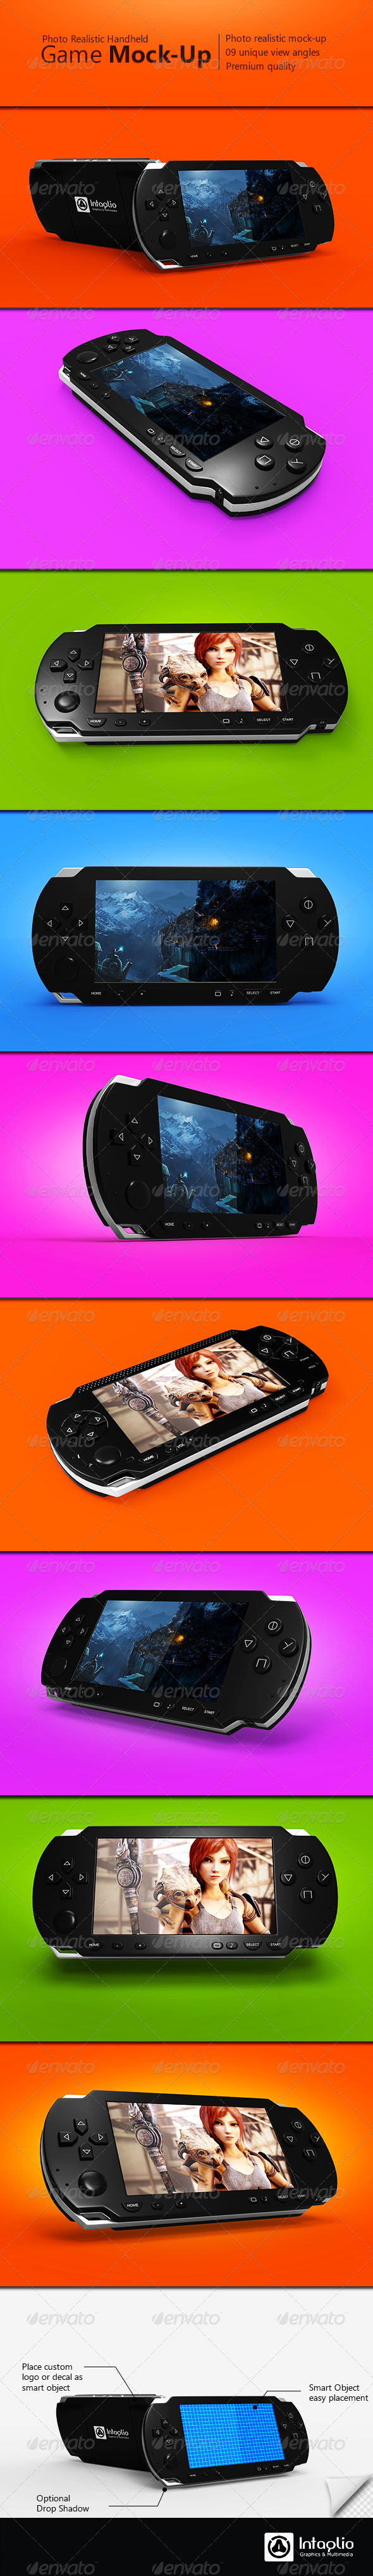 Handheld Game Mock-Up - Mobile Displays